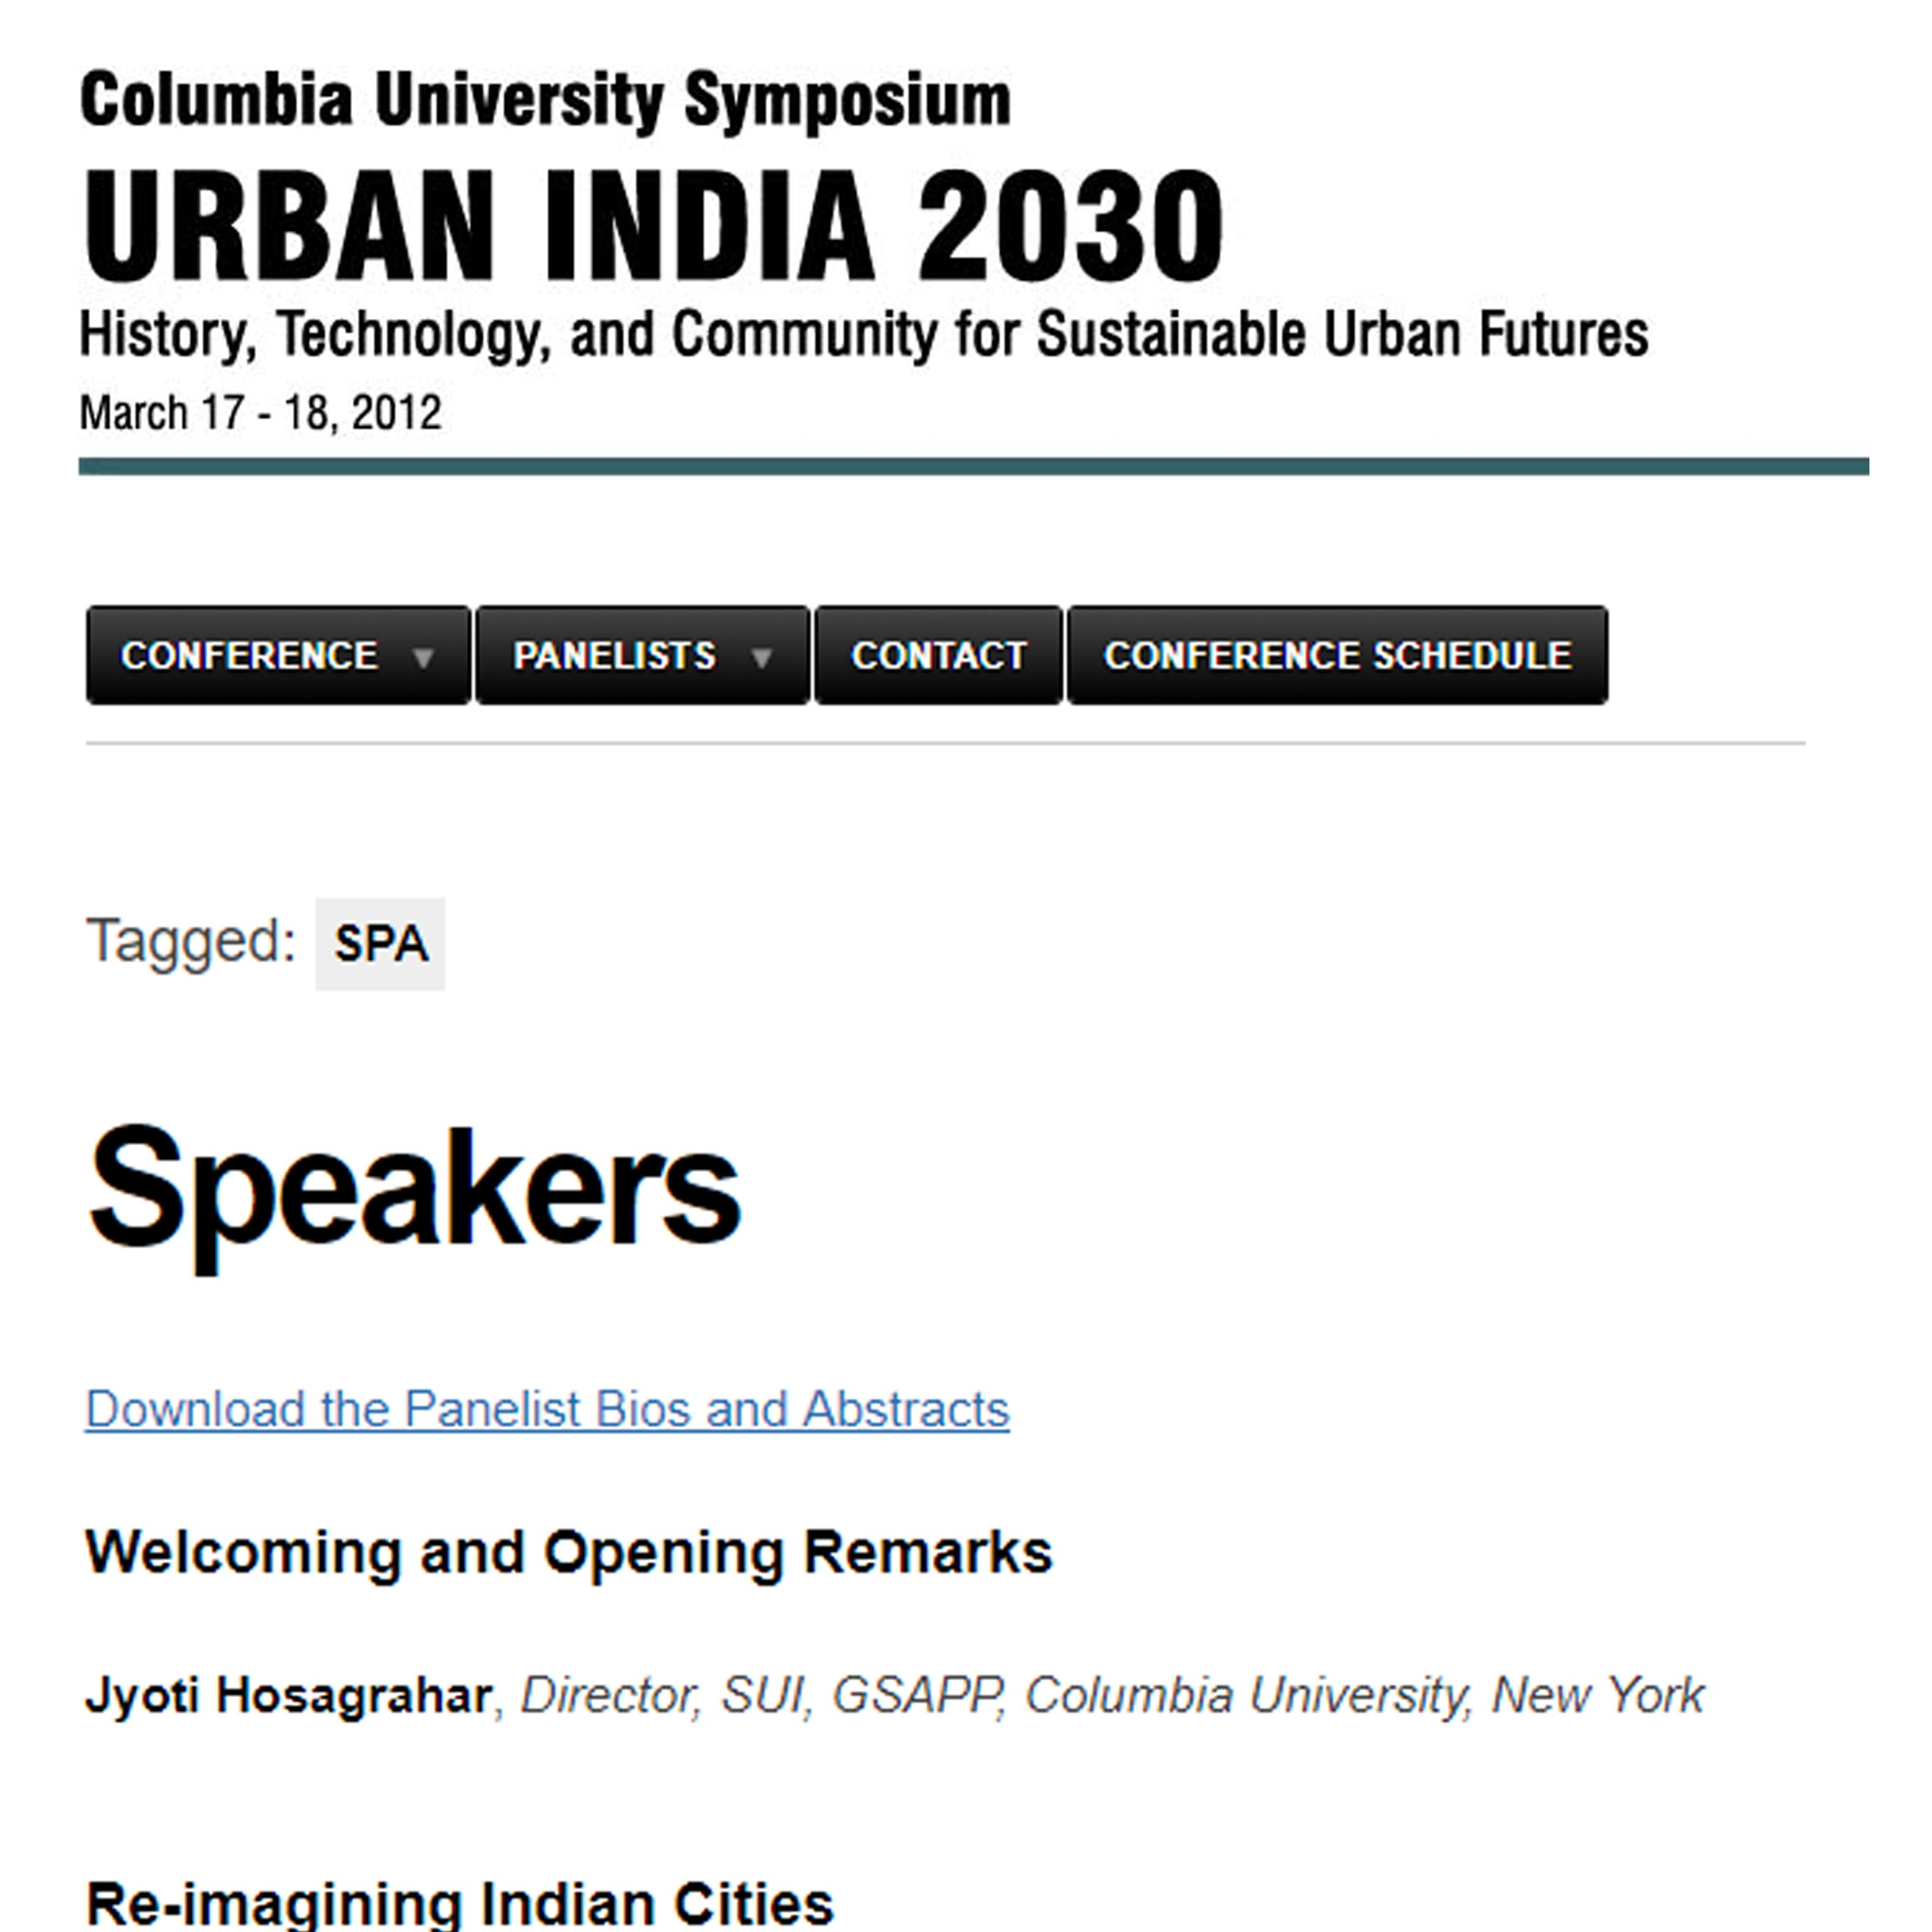 Columbia University Symposium URBAN INDIA 2030 History, Technology, and Community for Sustainable Urban Futures,17 -18 March 2012,